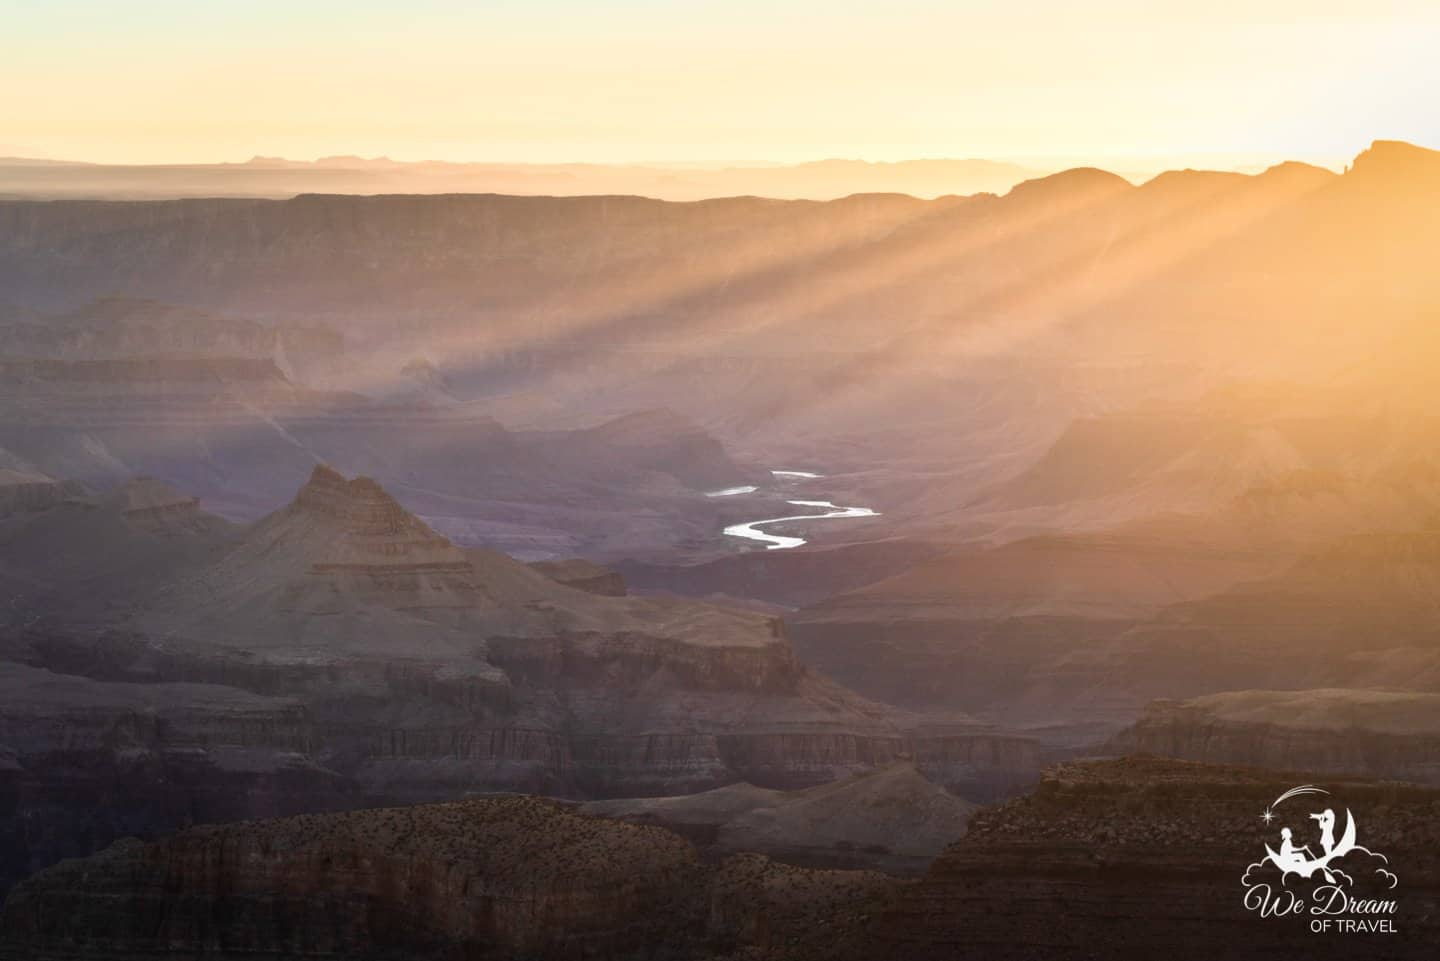 Sunset and sunrise are the best times to visit Grand Canyon.